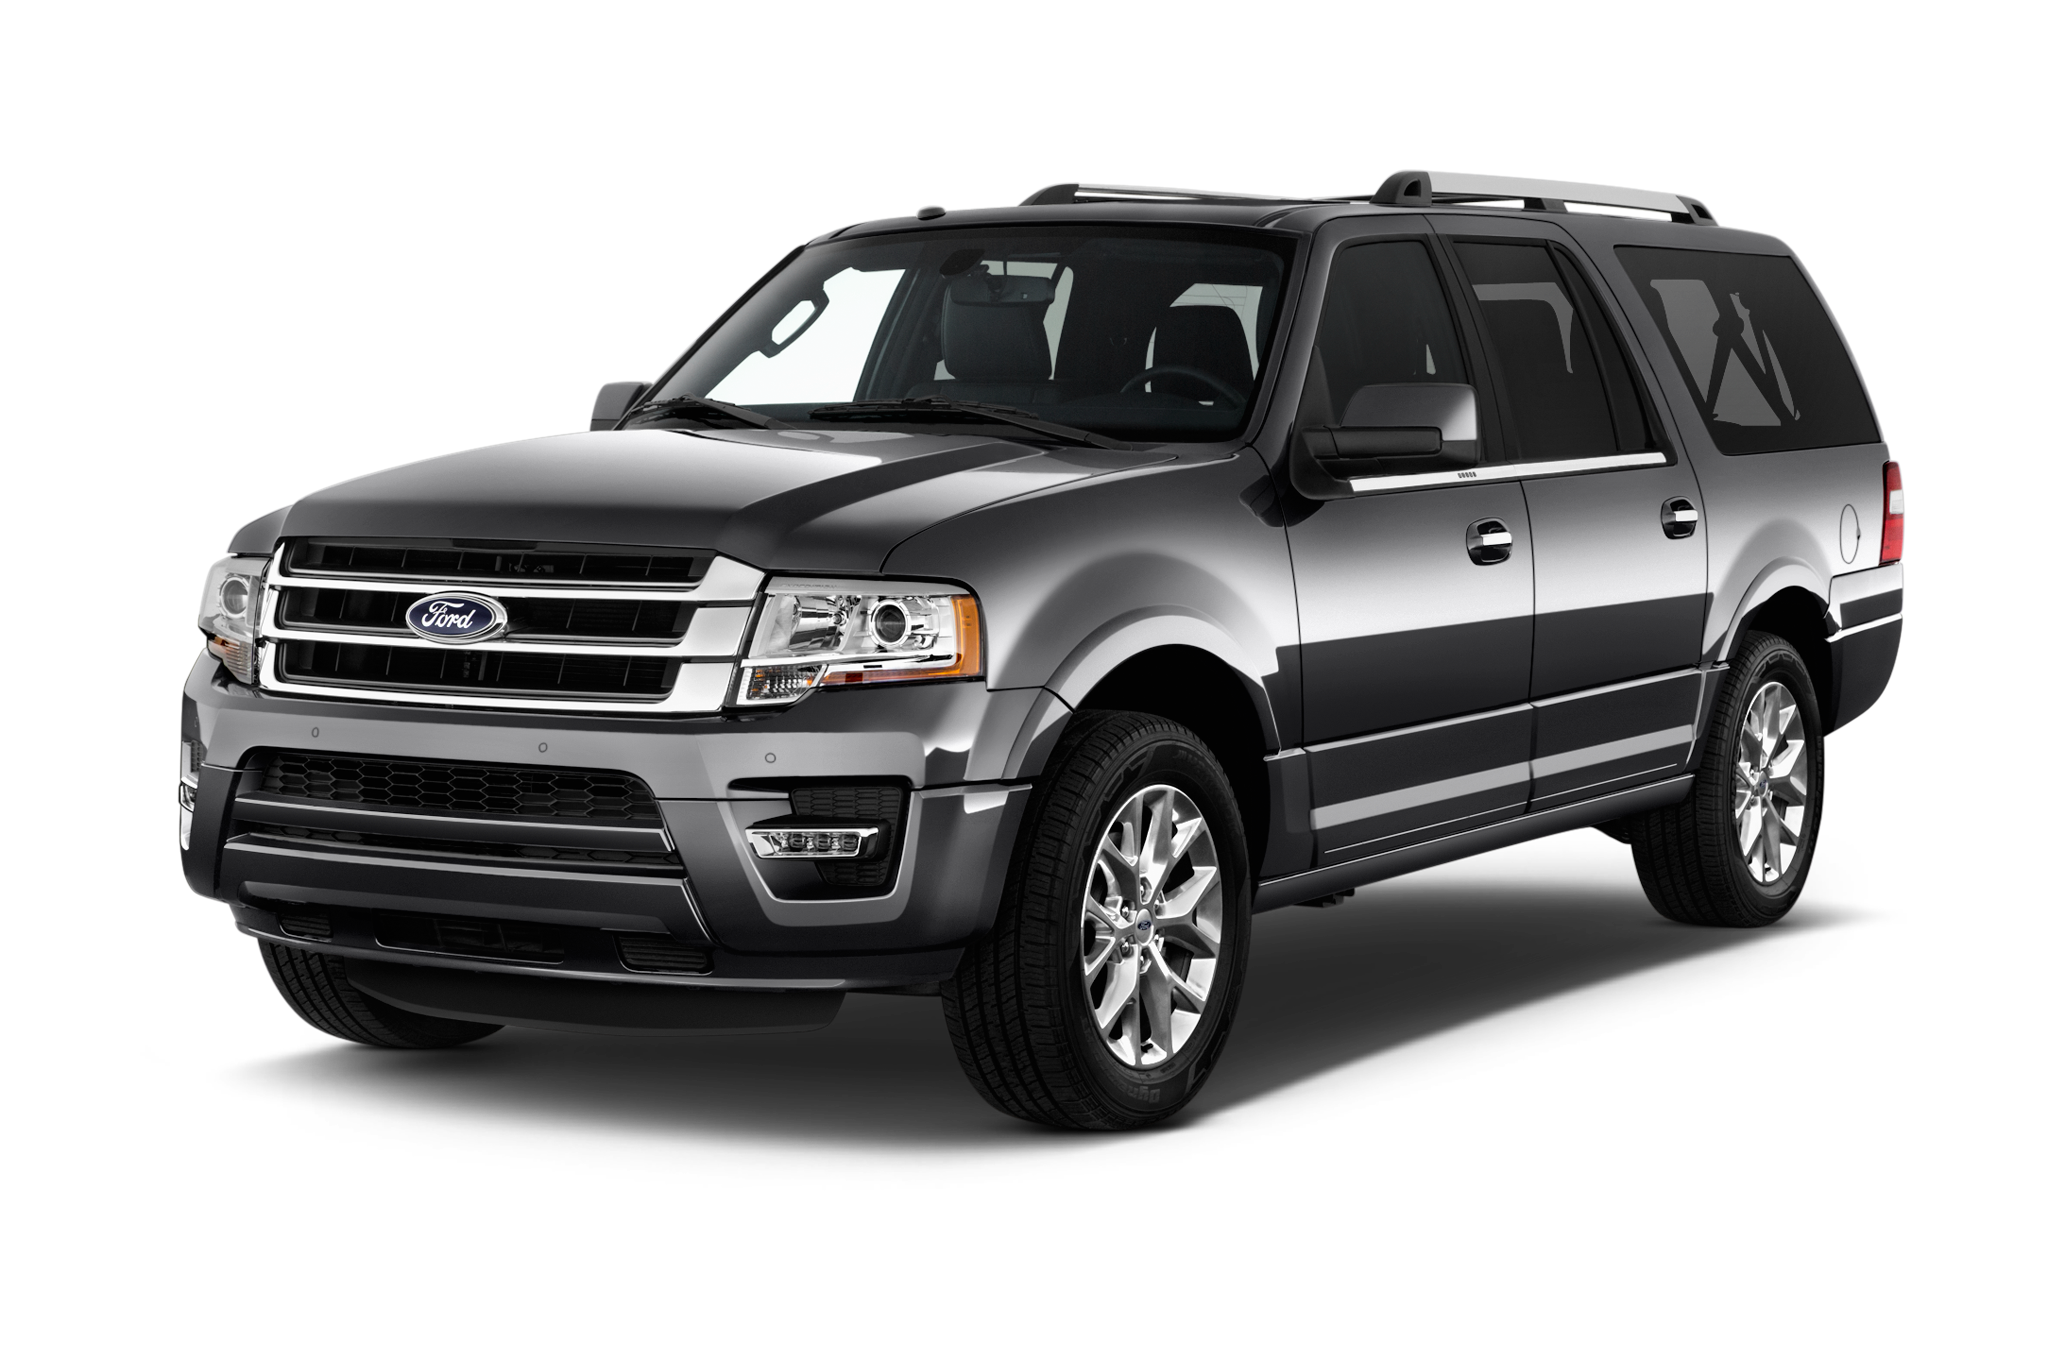 2017 ford expedition max limited specs and features msn autos. Black Bedroom Furniture Sets. Home Design Ideas